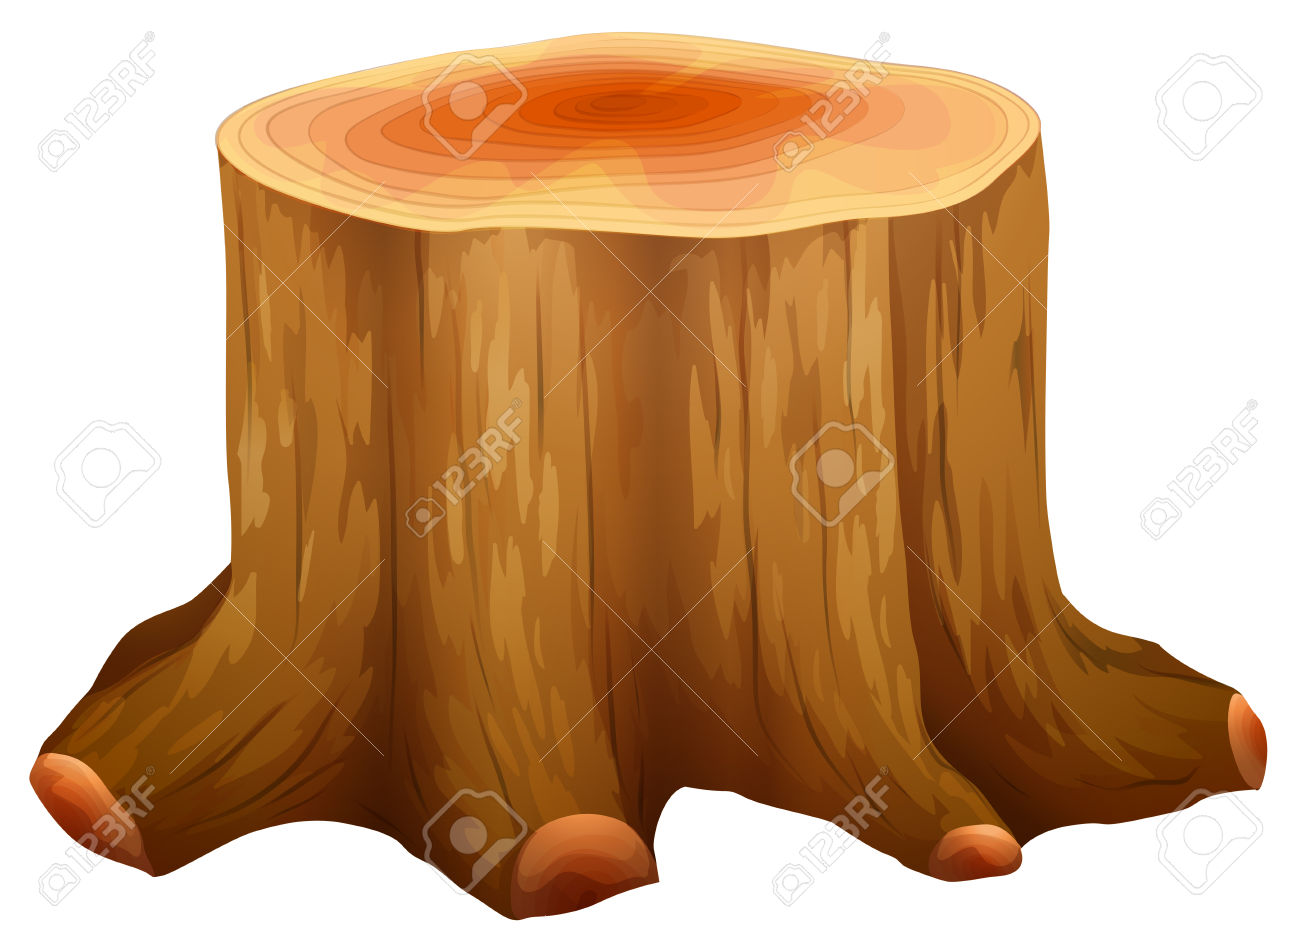 Stump clipart #16, Download drawings